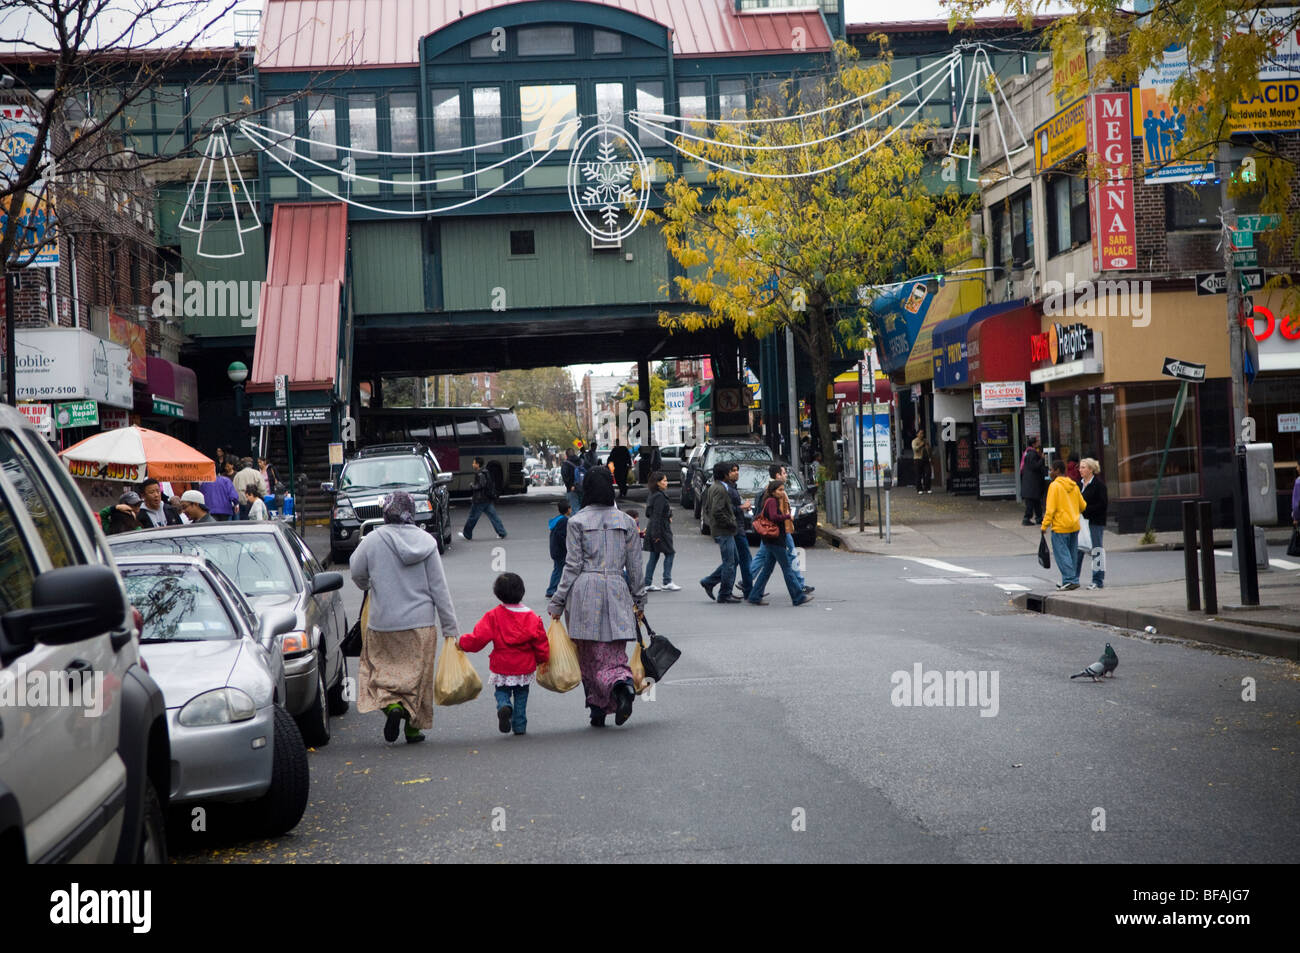 74th Street toward the Flushing subway line in the Queens neighborhood of Jackson Heights in New York - Stock Image